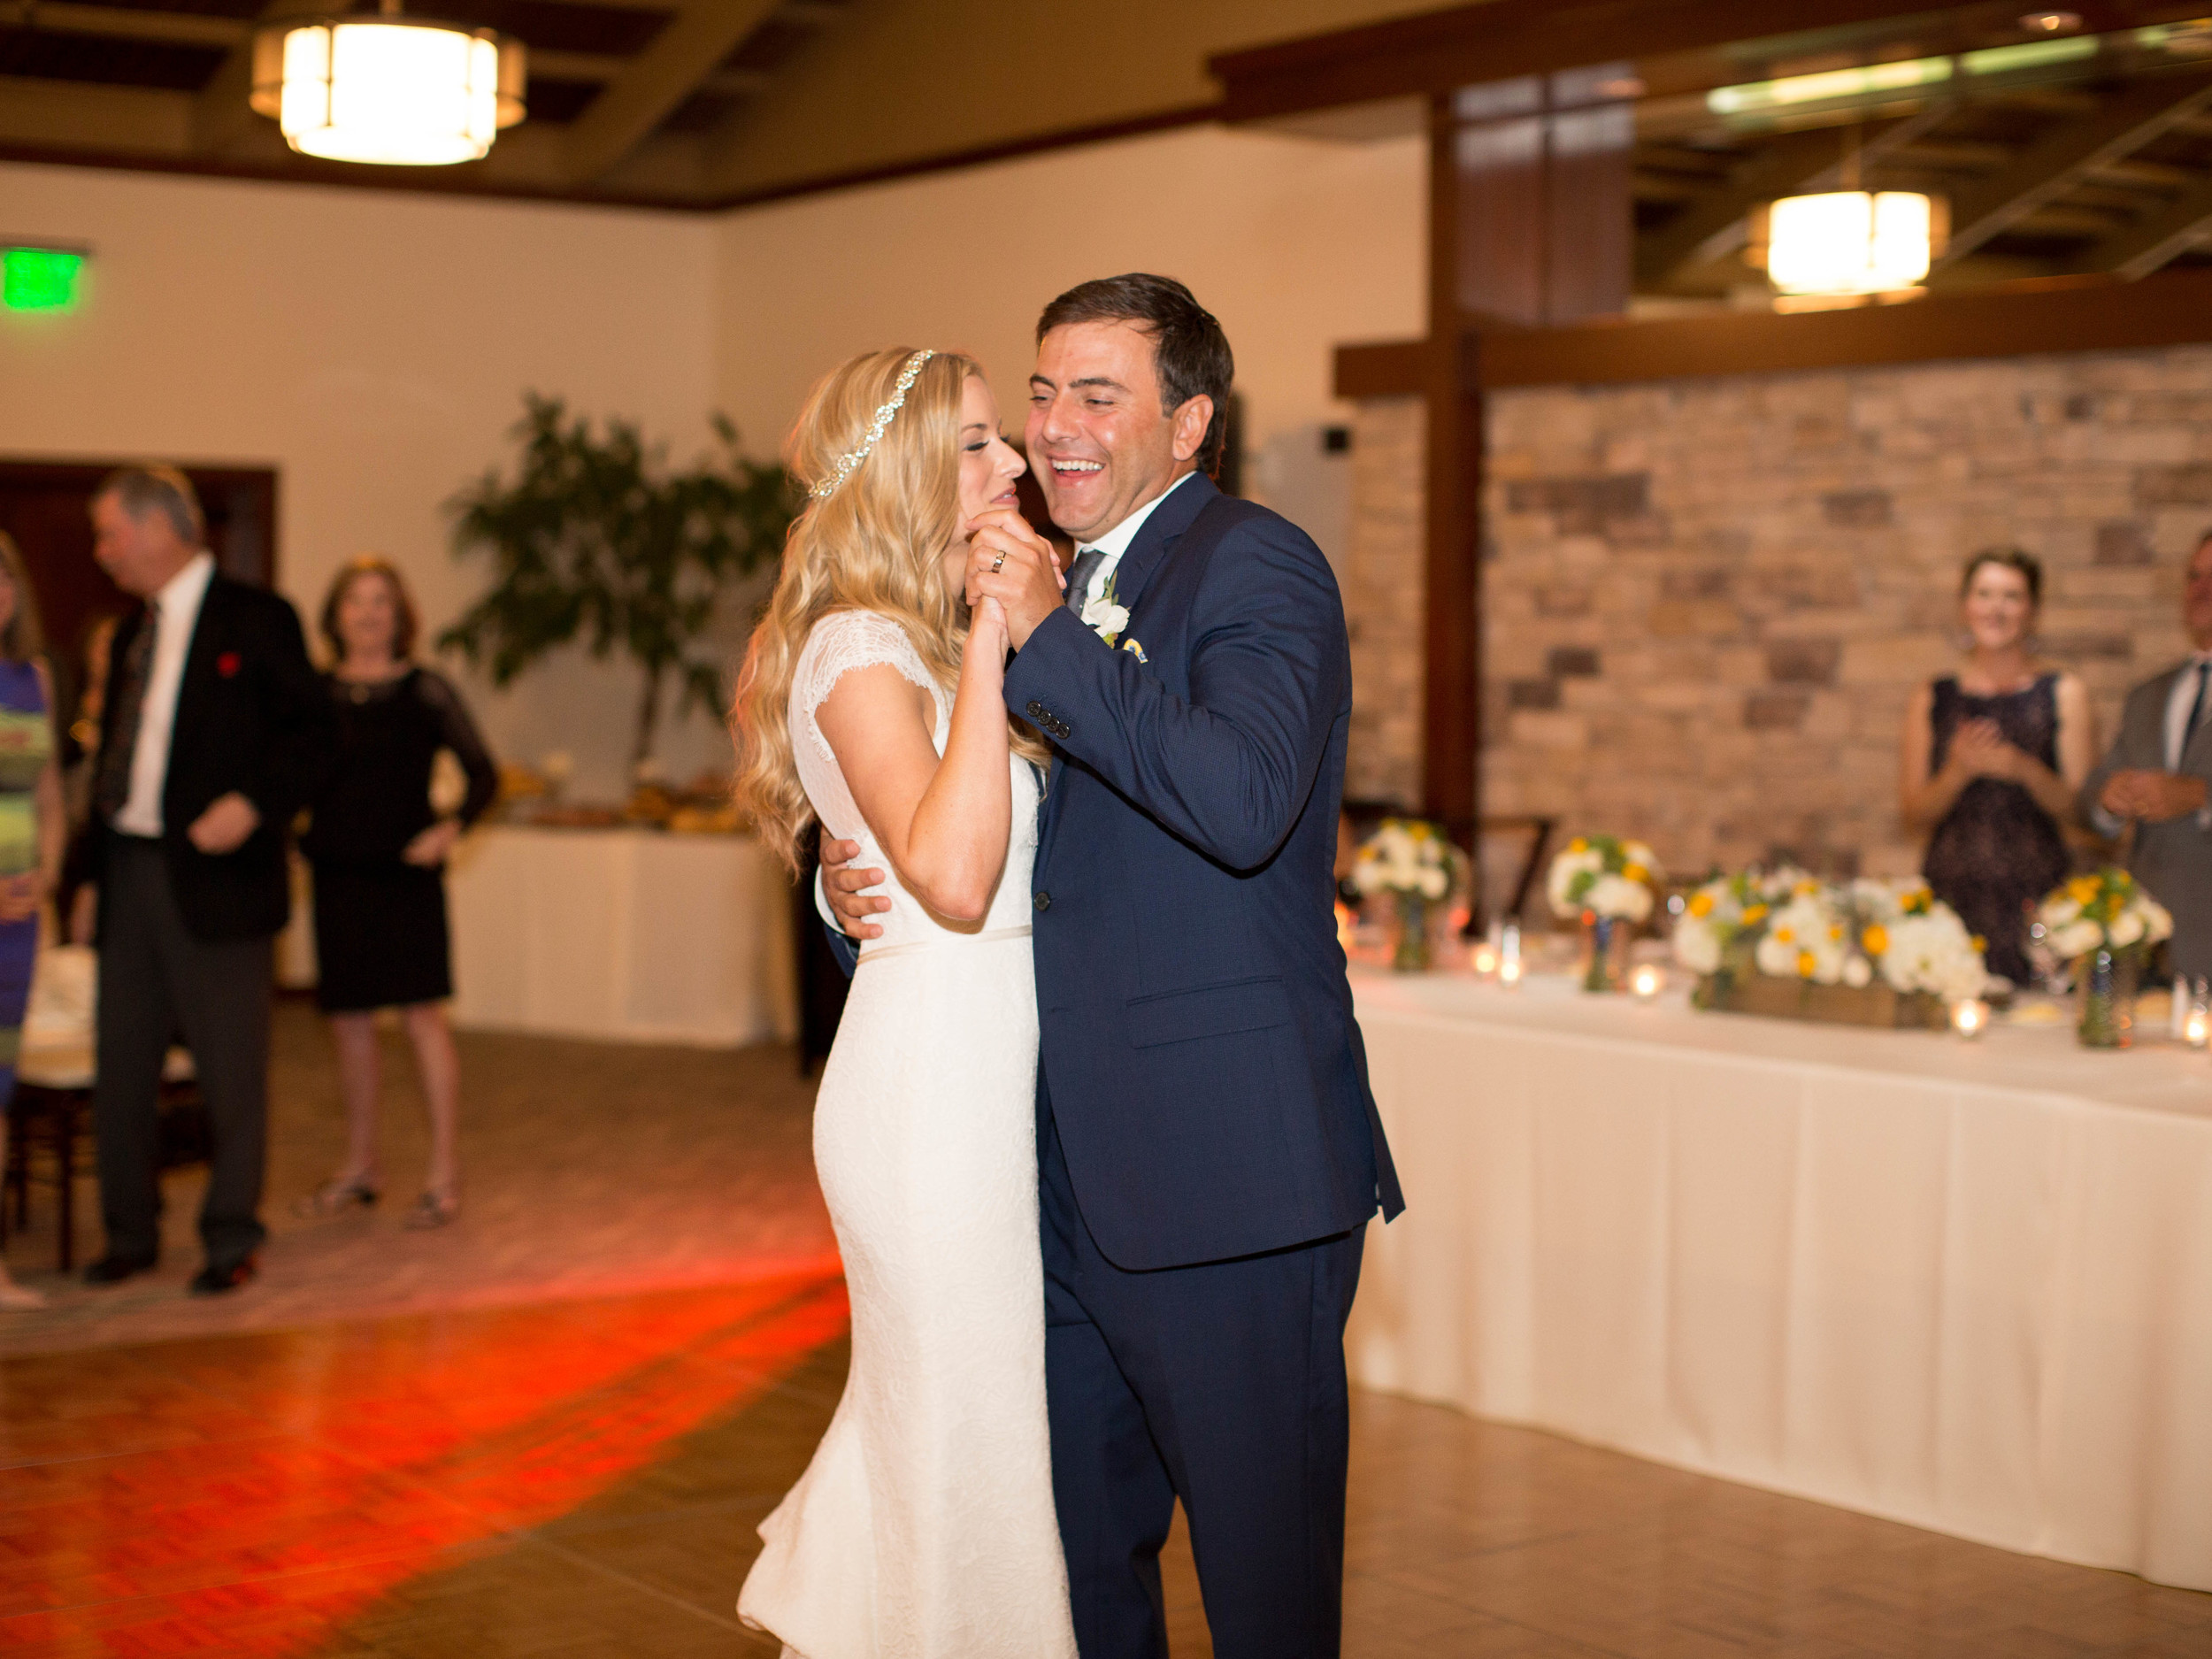 Lauren & Bobby_Quail Lodge Wedding | Carmel, CA - 856.jpg